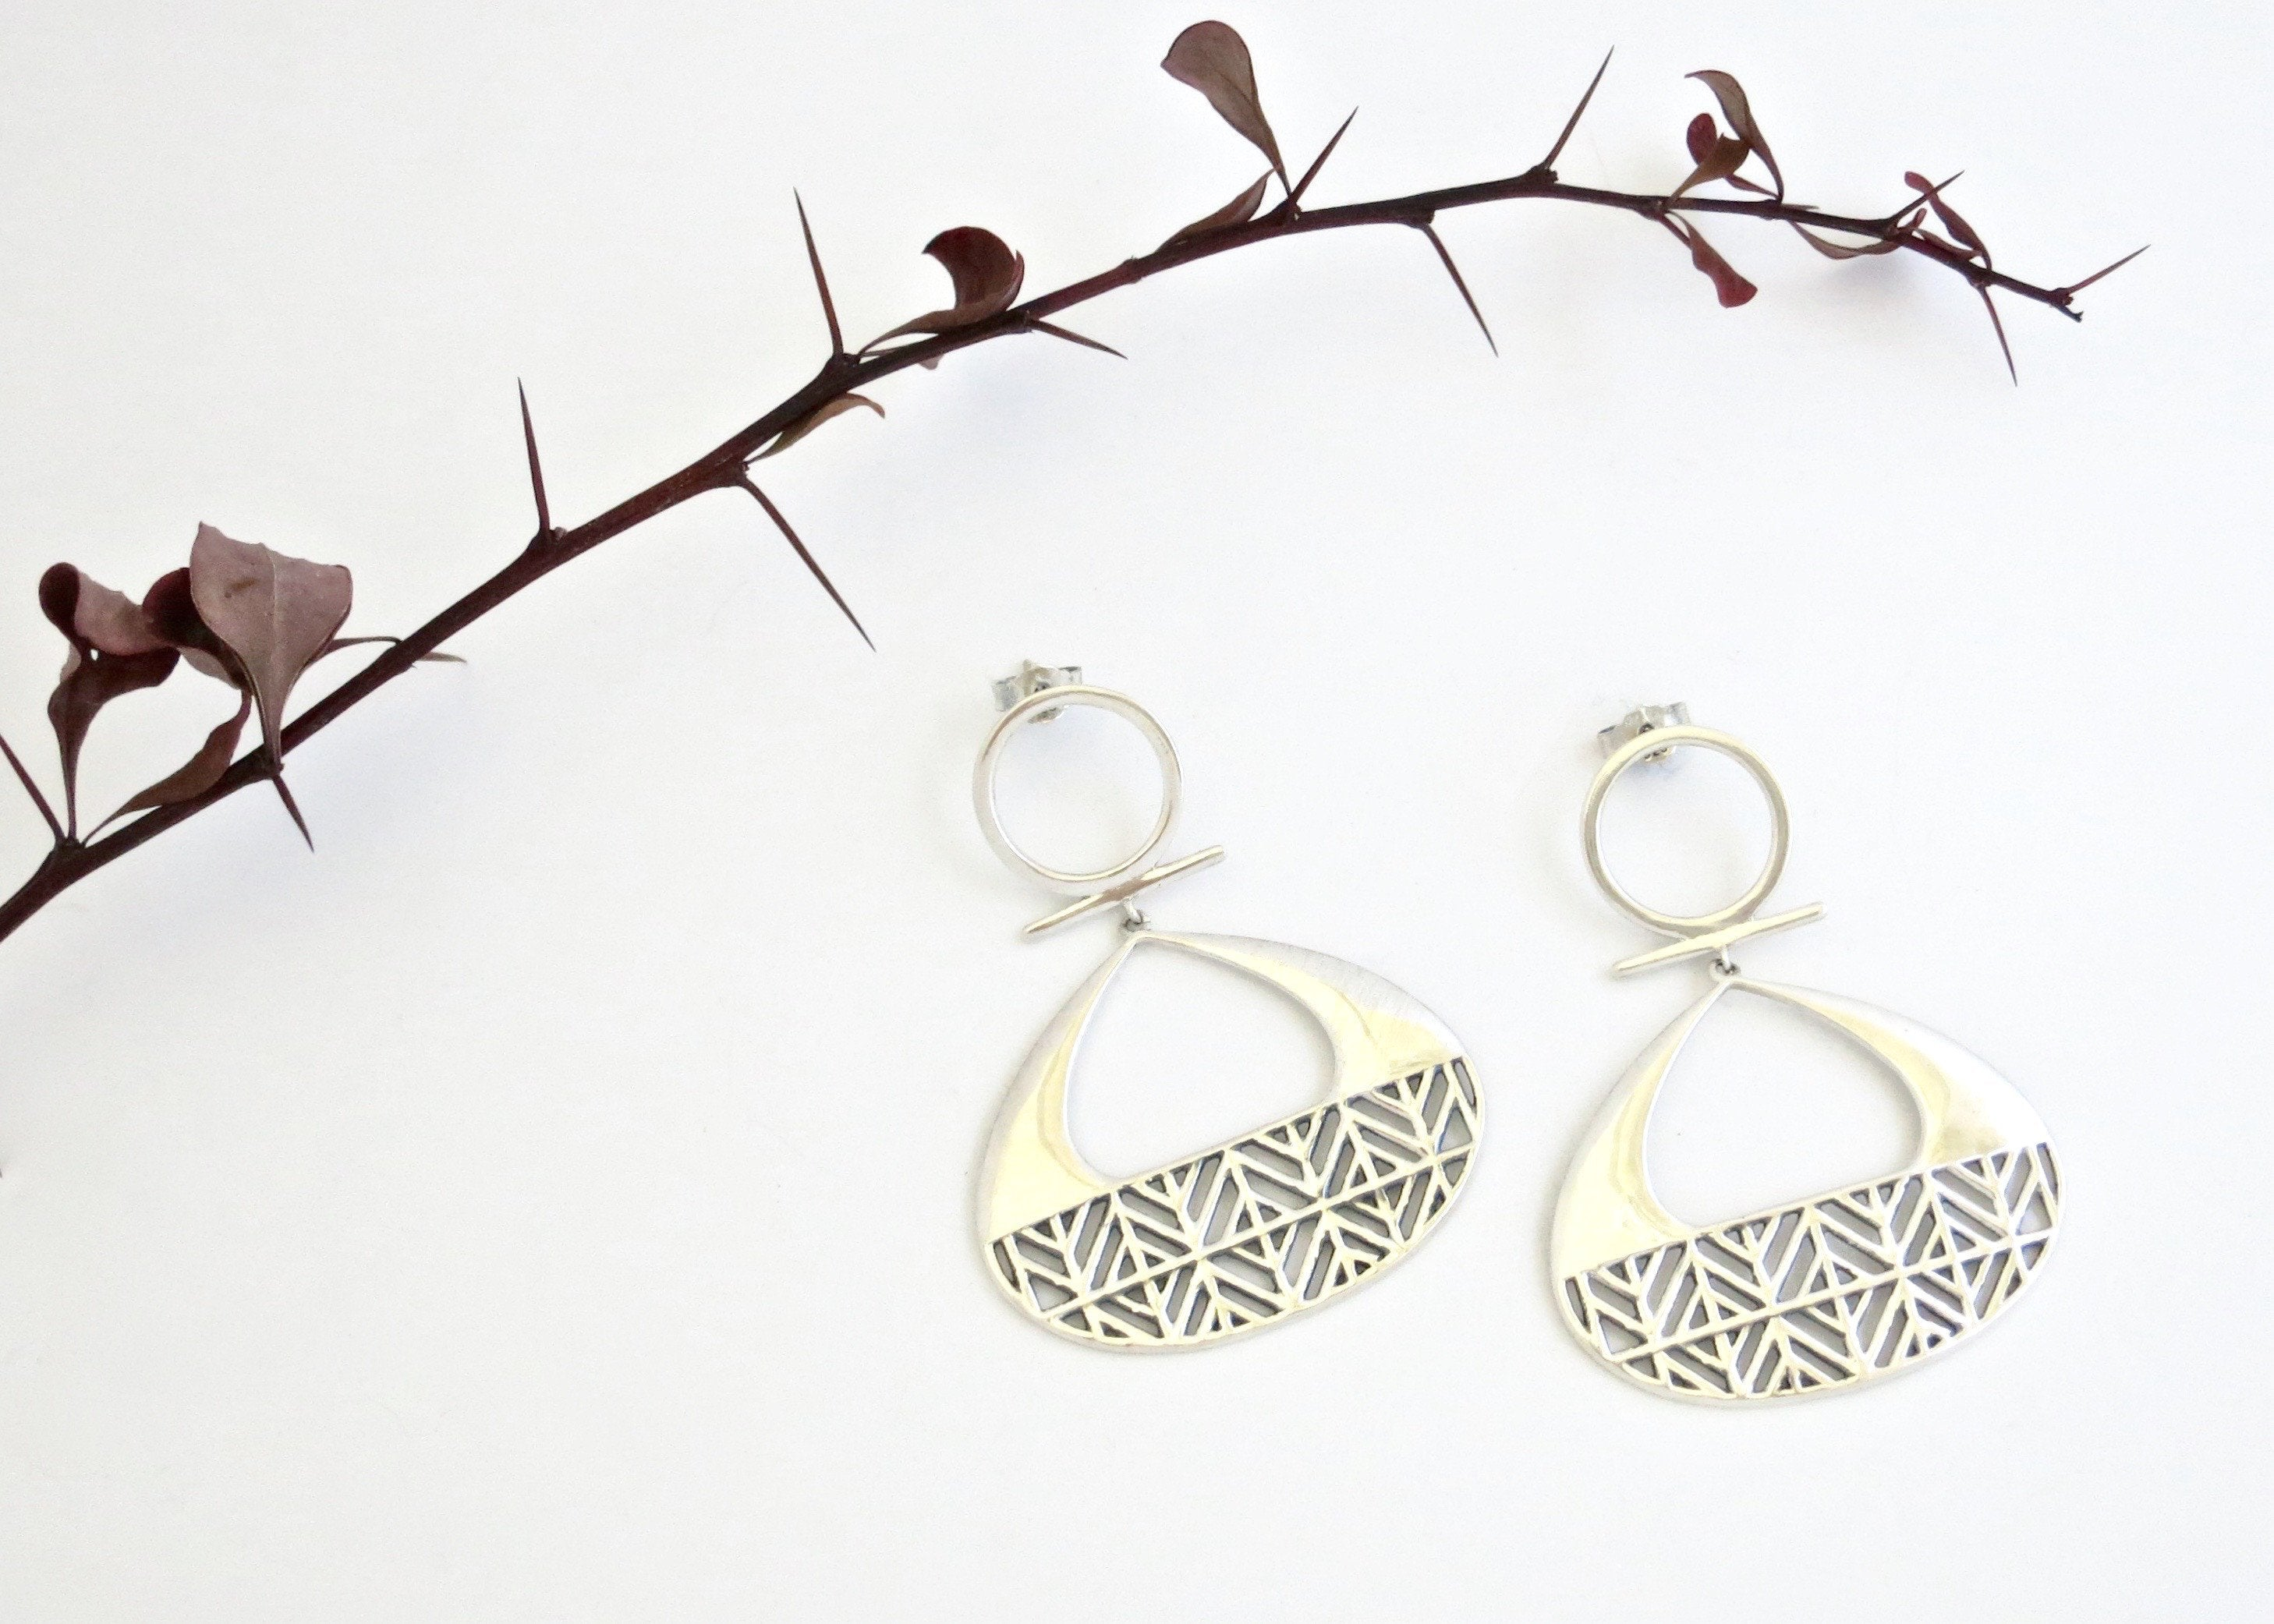 Urian dramatic lattice work earrings - Craft Stories Handmade, contemporary, personal and home accessories. Designed in California. Handcrafted in India. Traditional craftsmanship meets modern aesthetics. Sustainable design ethos, fair trade, conscious, artisanal jewelry and home decor. Objects with a story. Unique and on-trend.